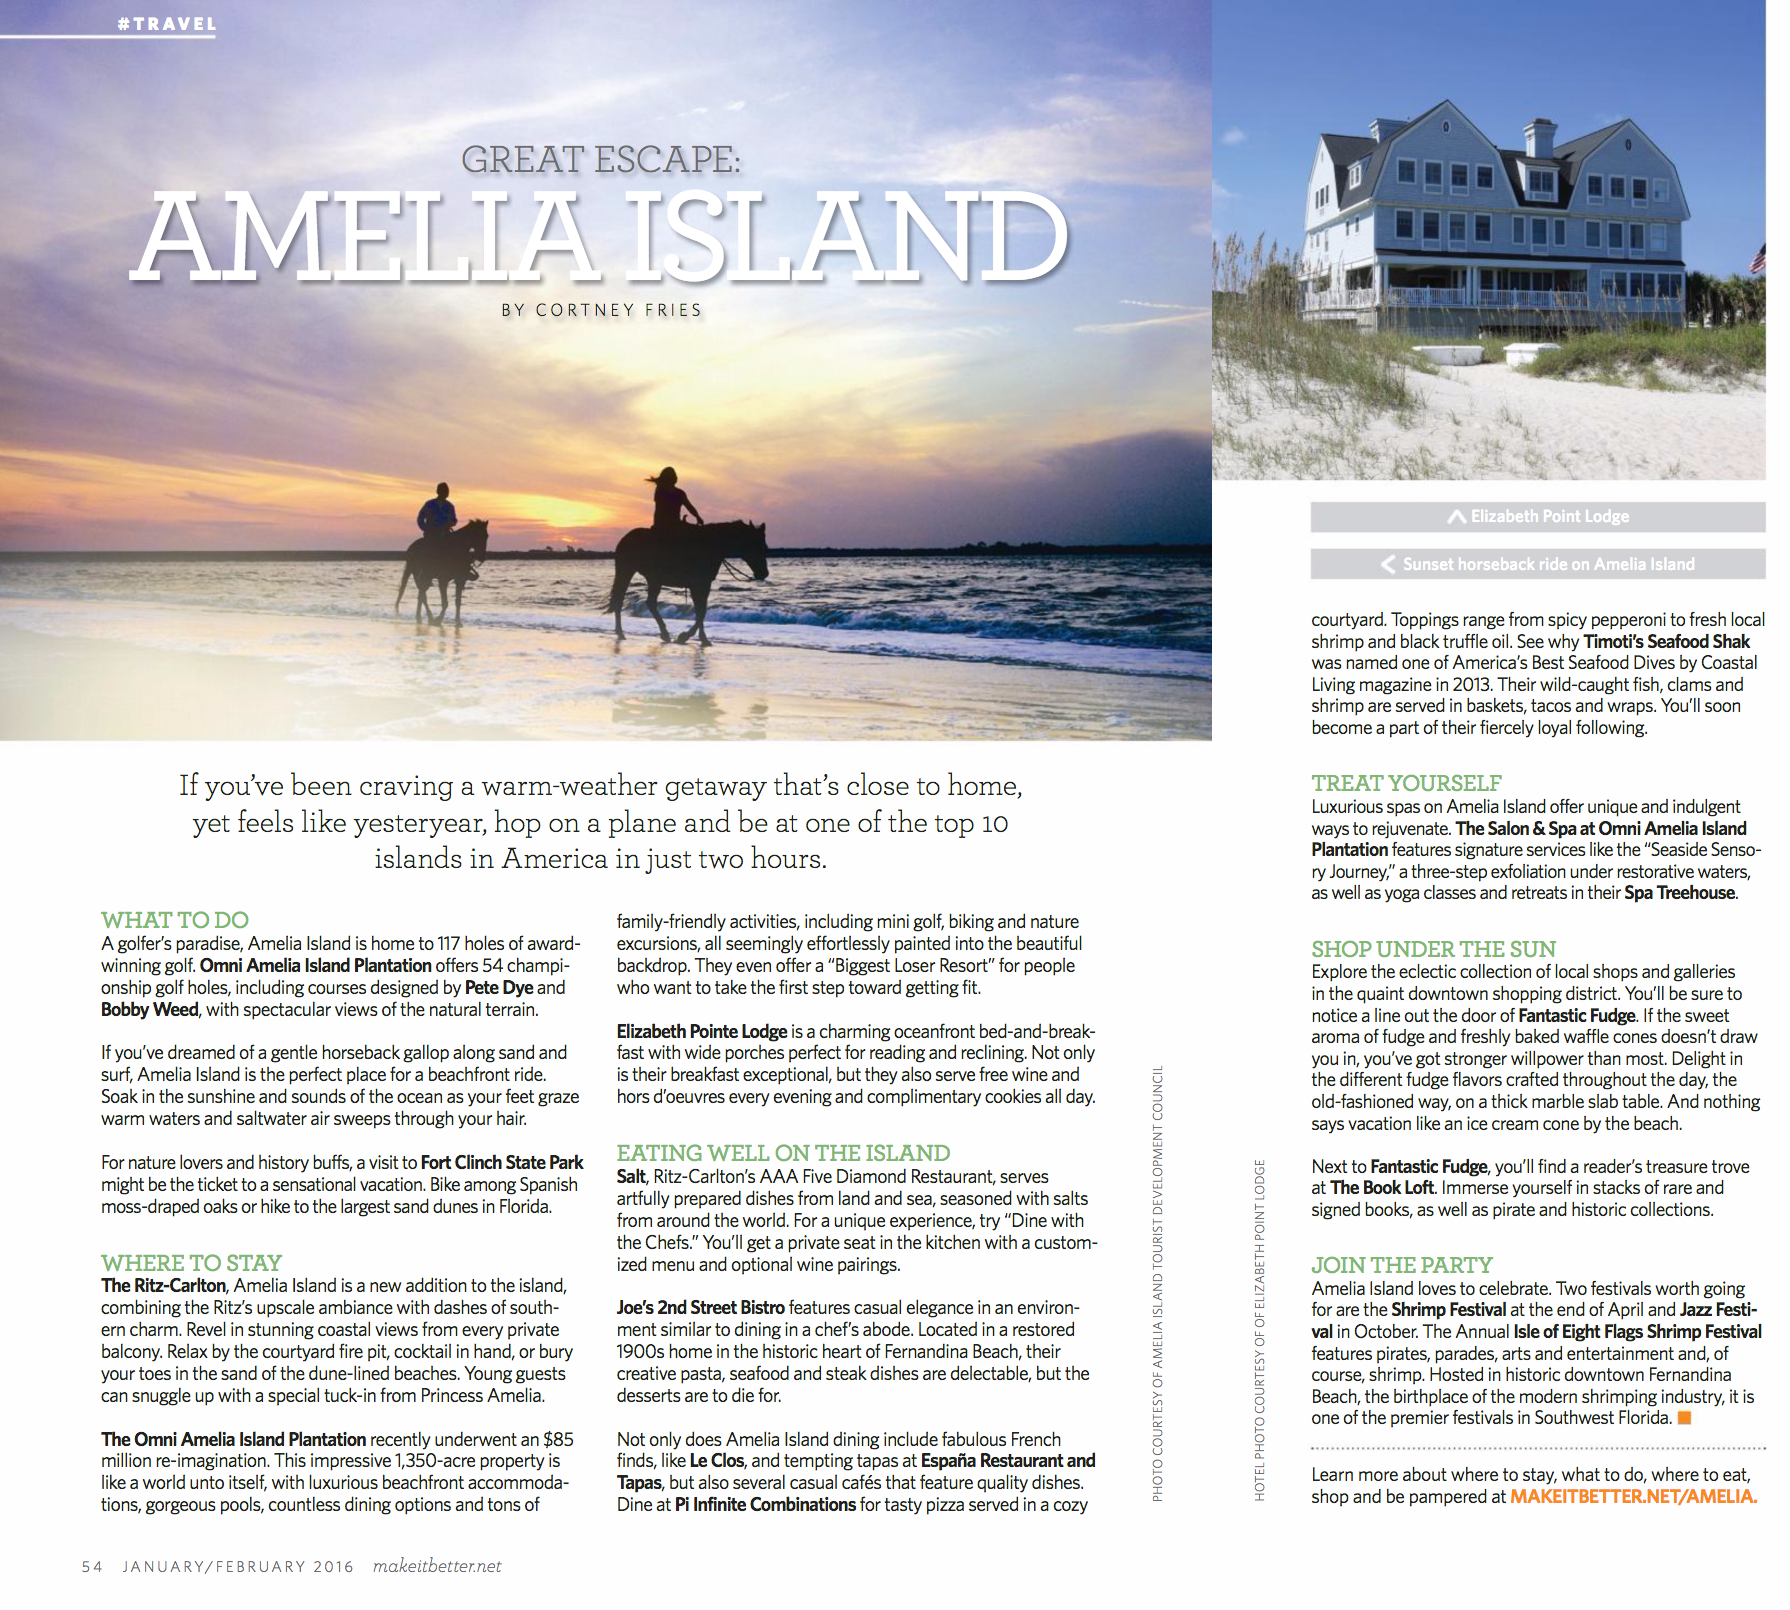 Amelia Island, One Of The Top 10 Islands In America, Is